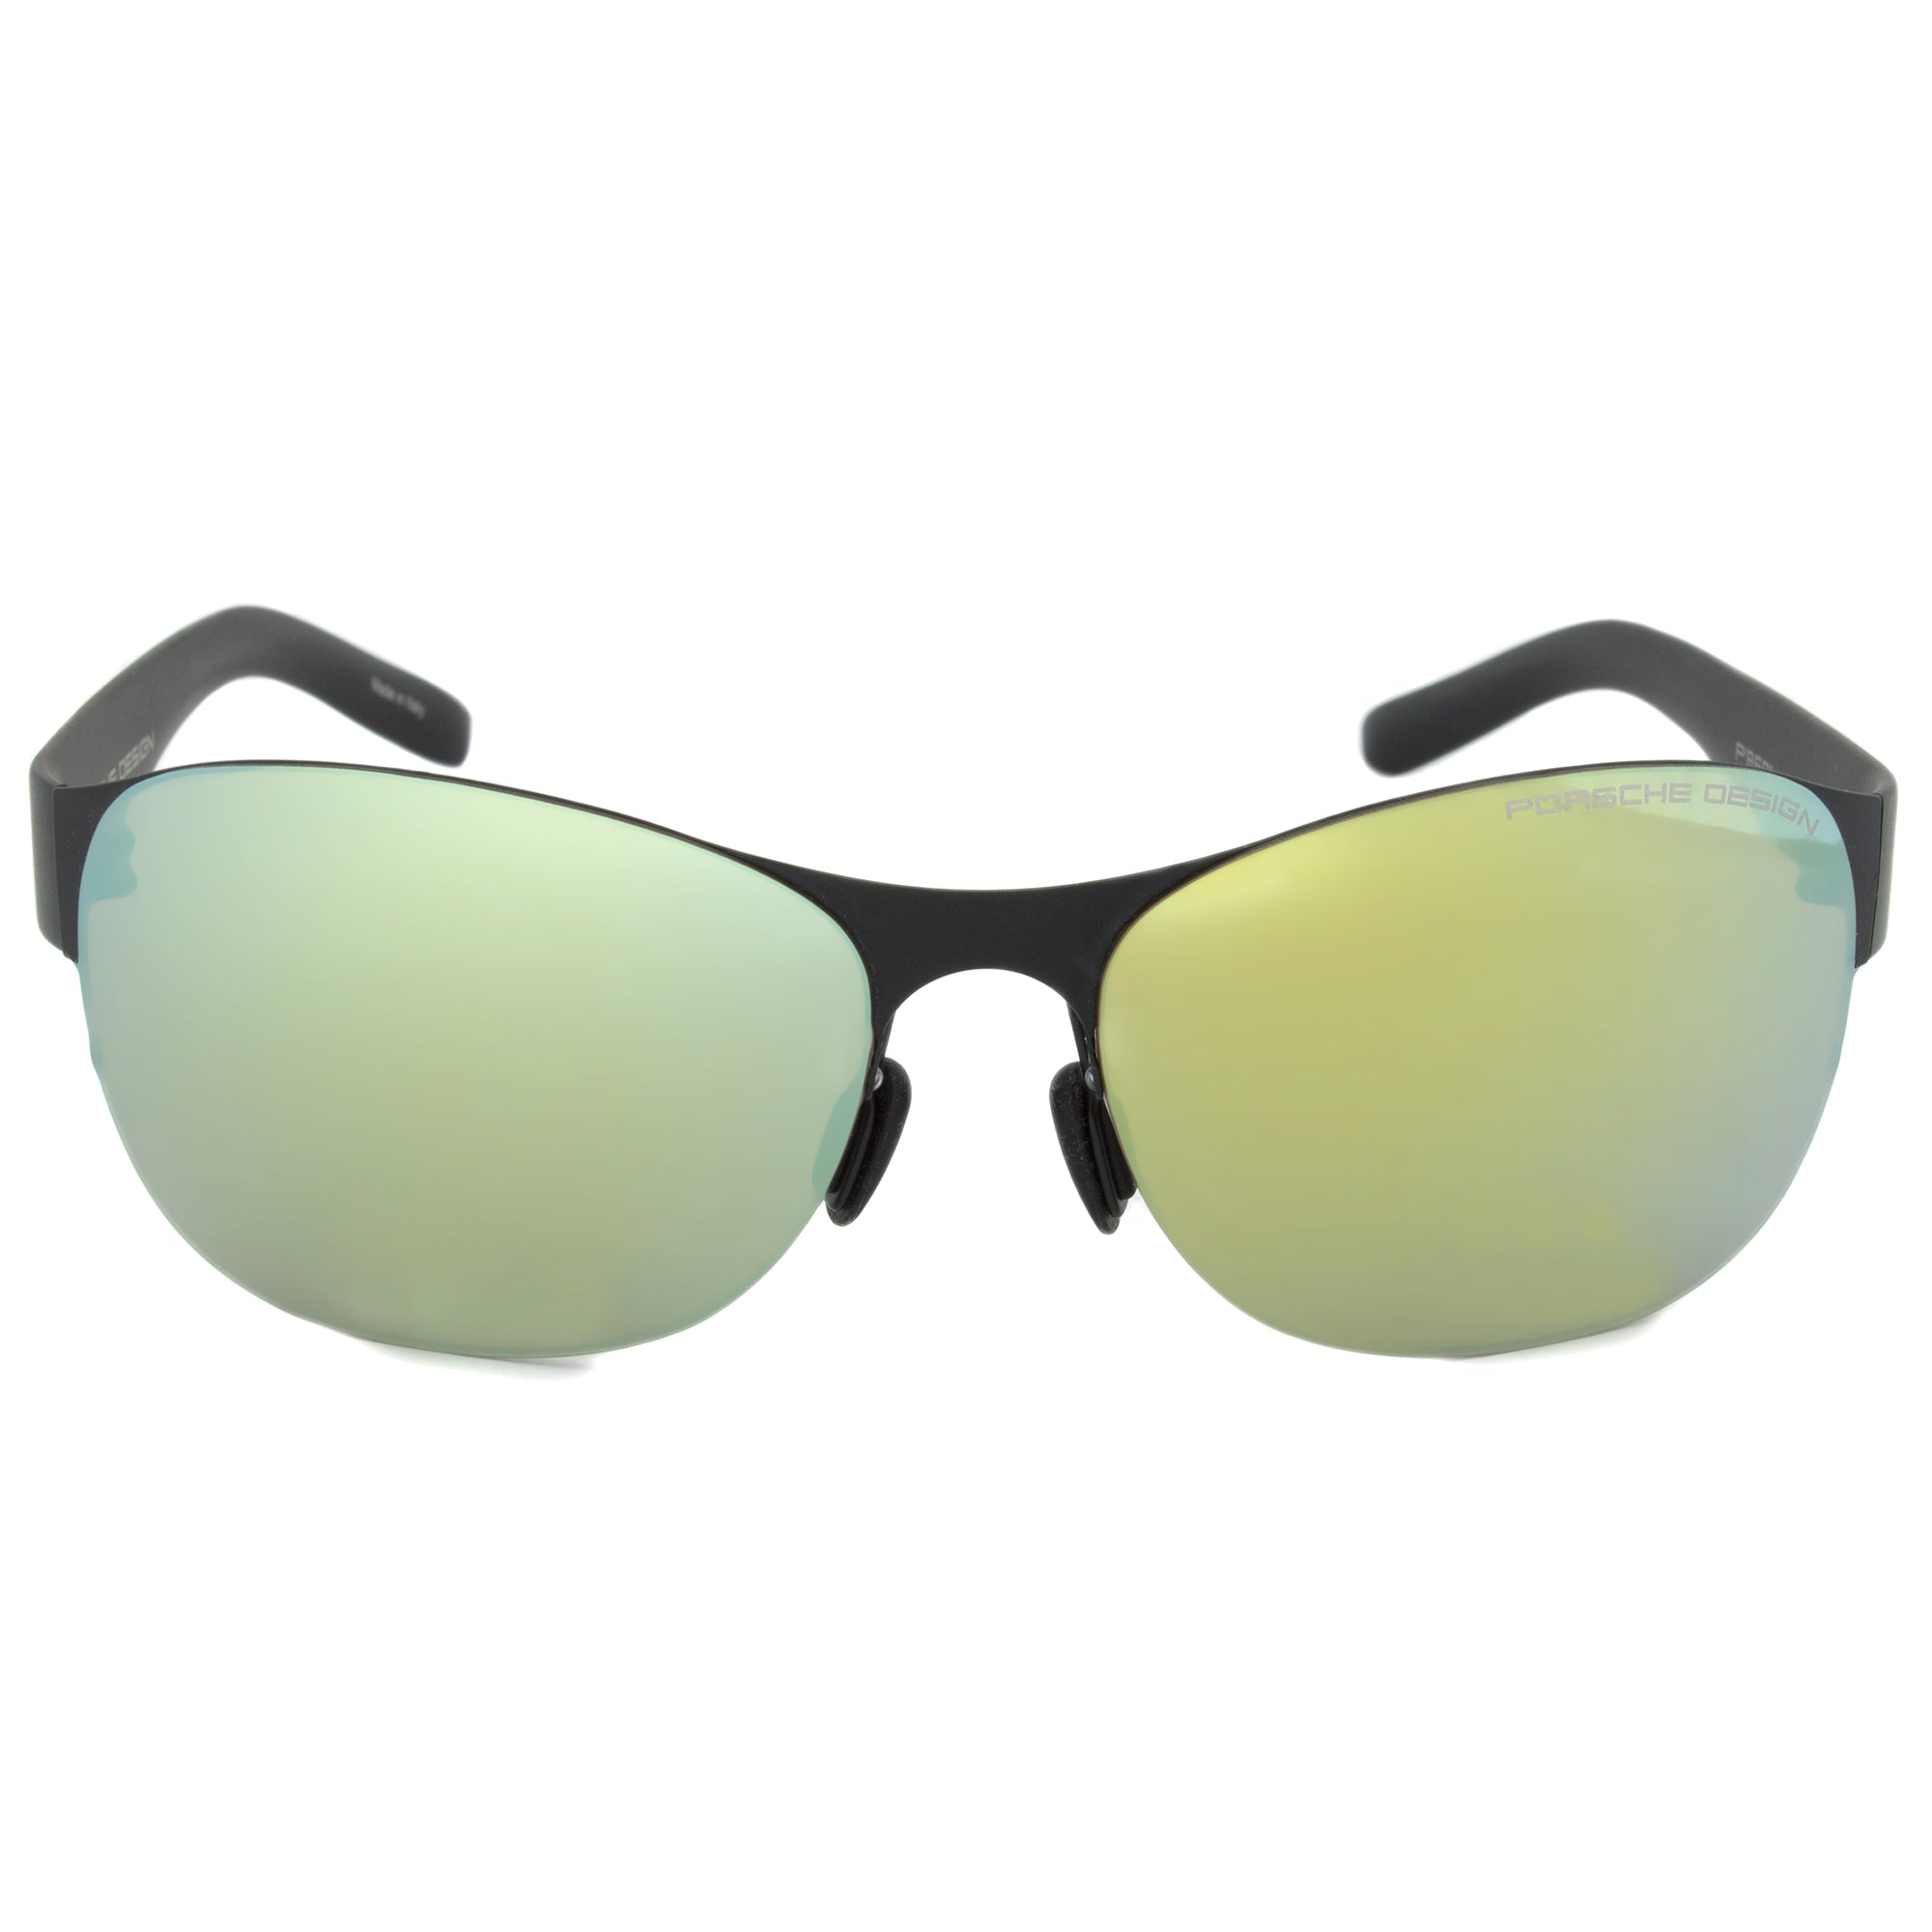 Porsche Design Design P8581 A Oval Sunglasses | Black Frame | Green Lens